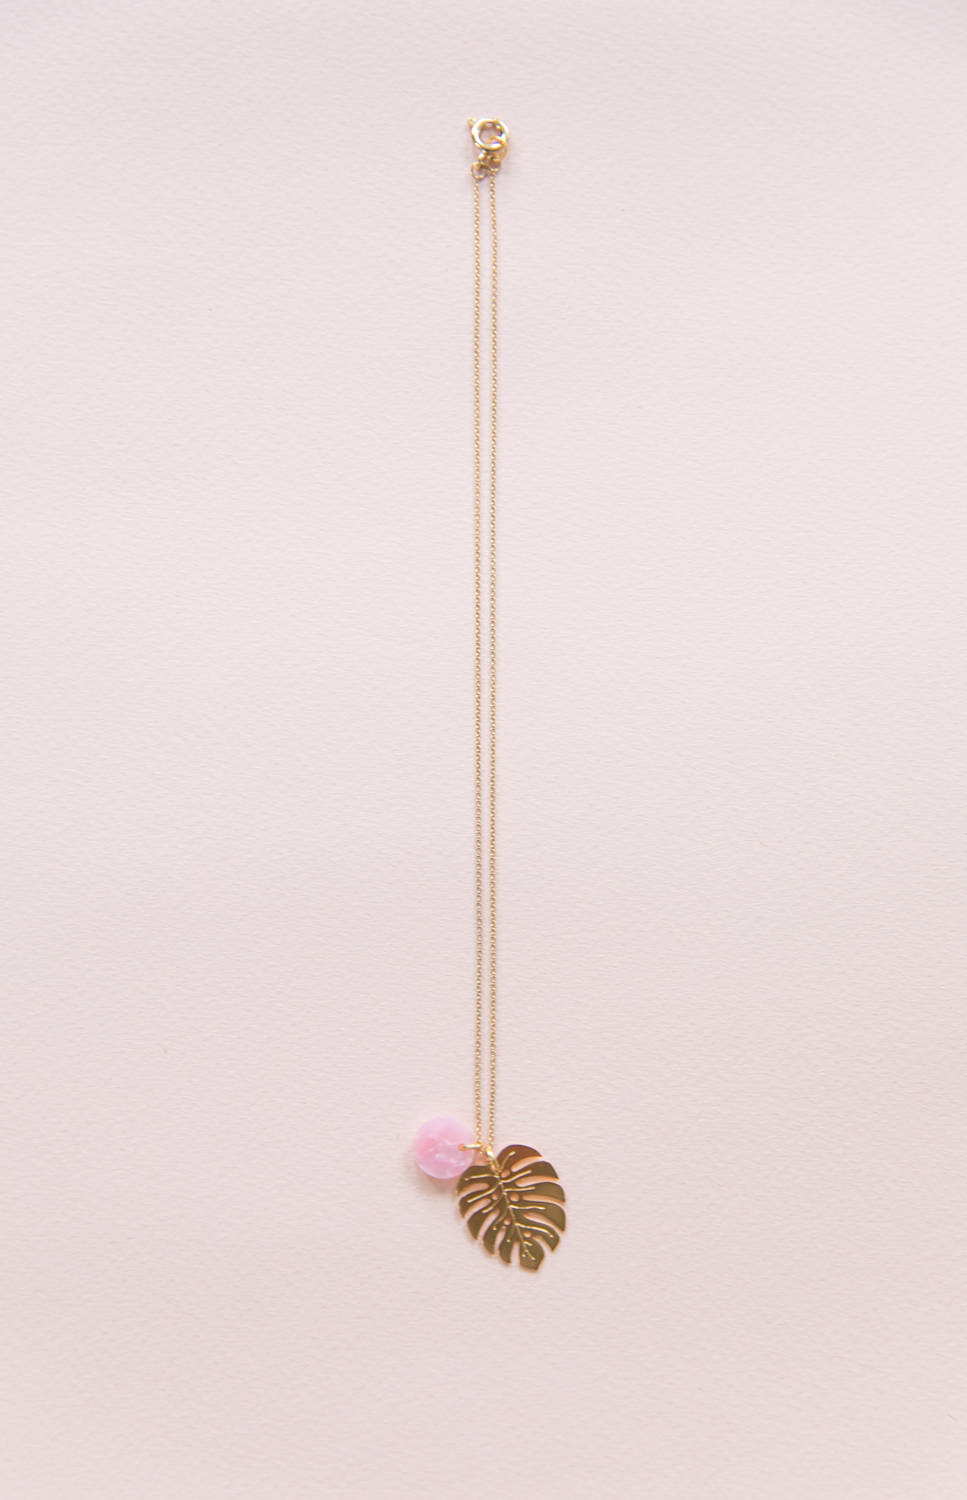 diy-bijou-collier-monstera-necklace-13